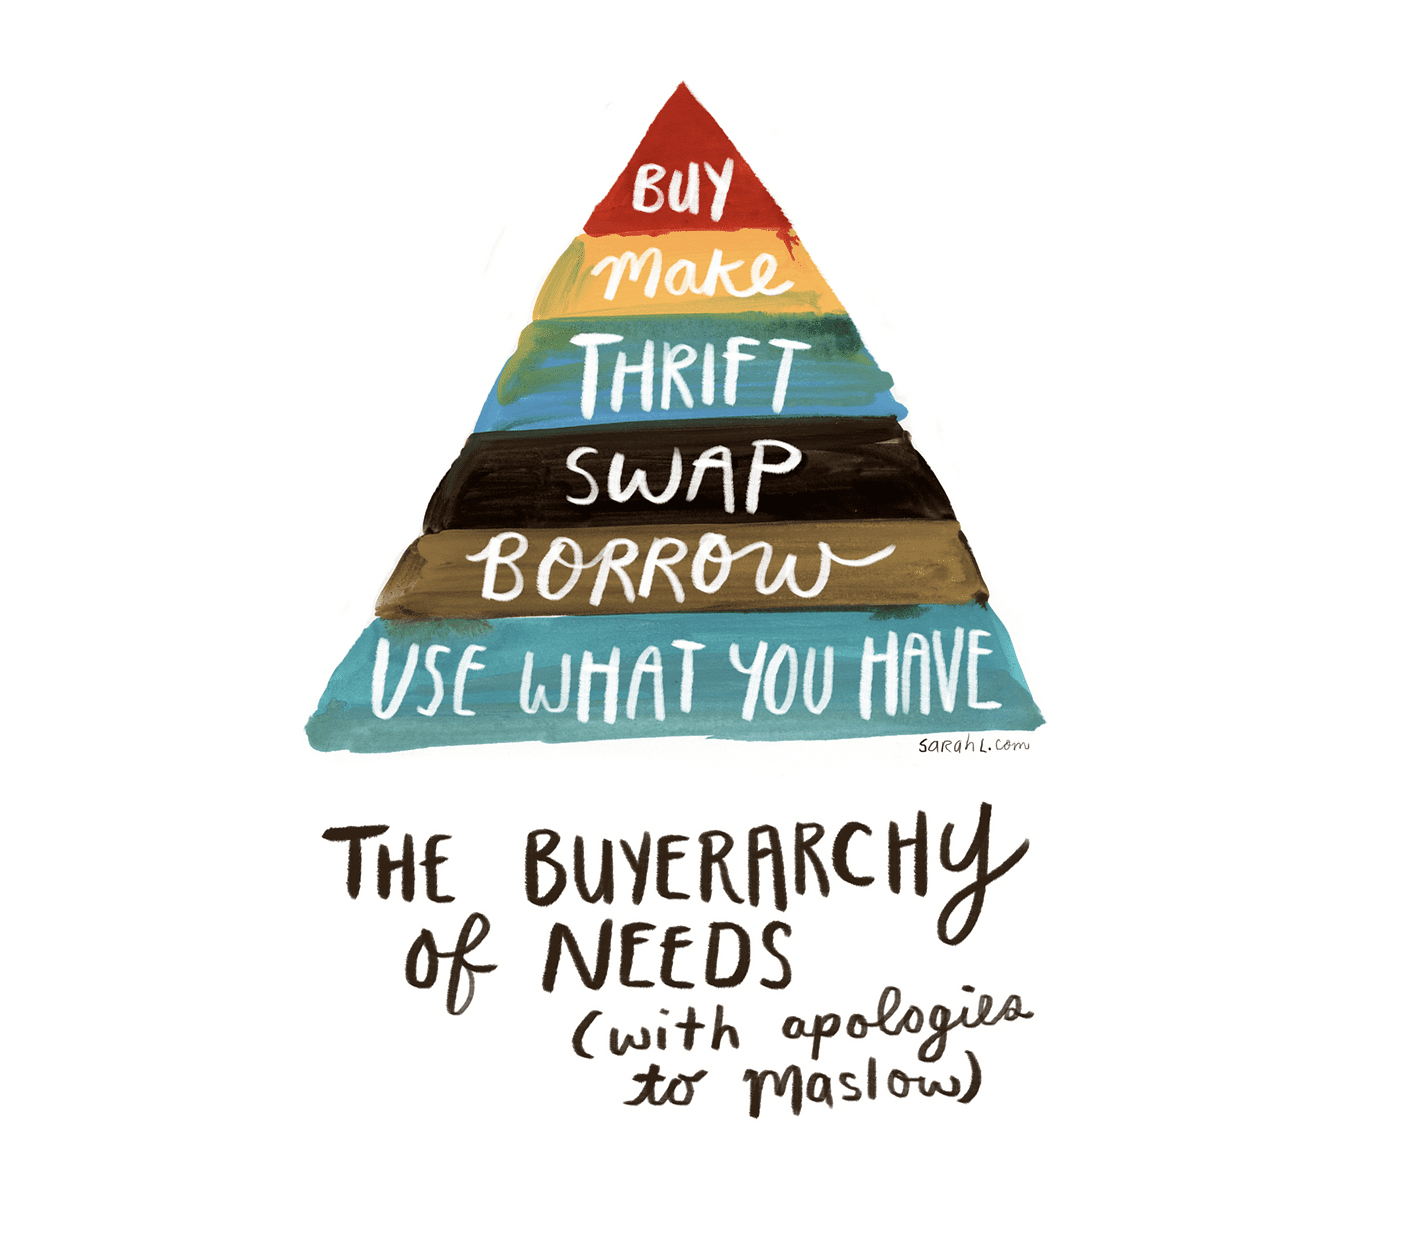 Buyerarchy of needs diagram by Sarah Lazarovic